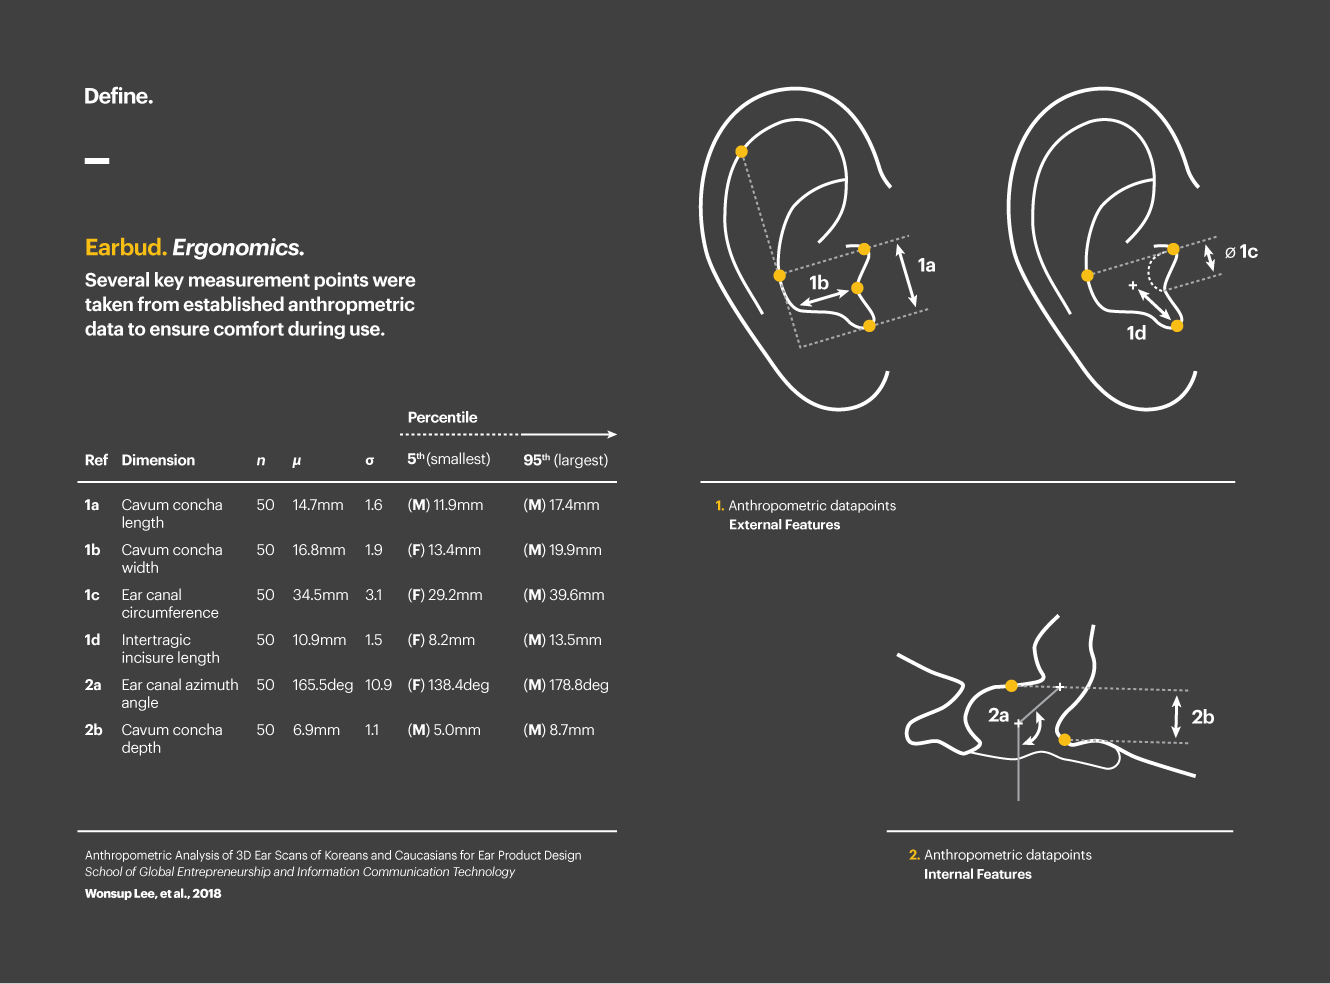 Ergonomic assessment of inner ear dimensions